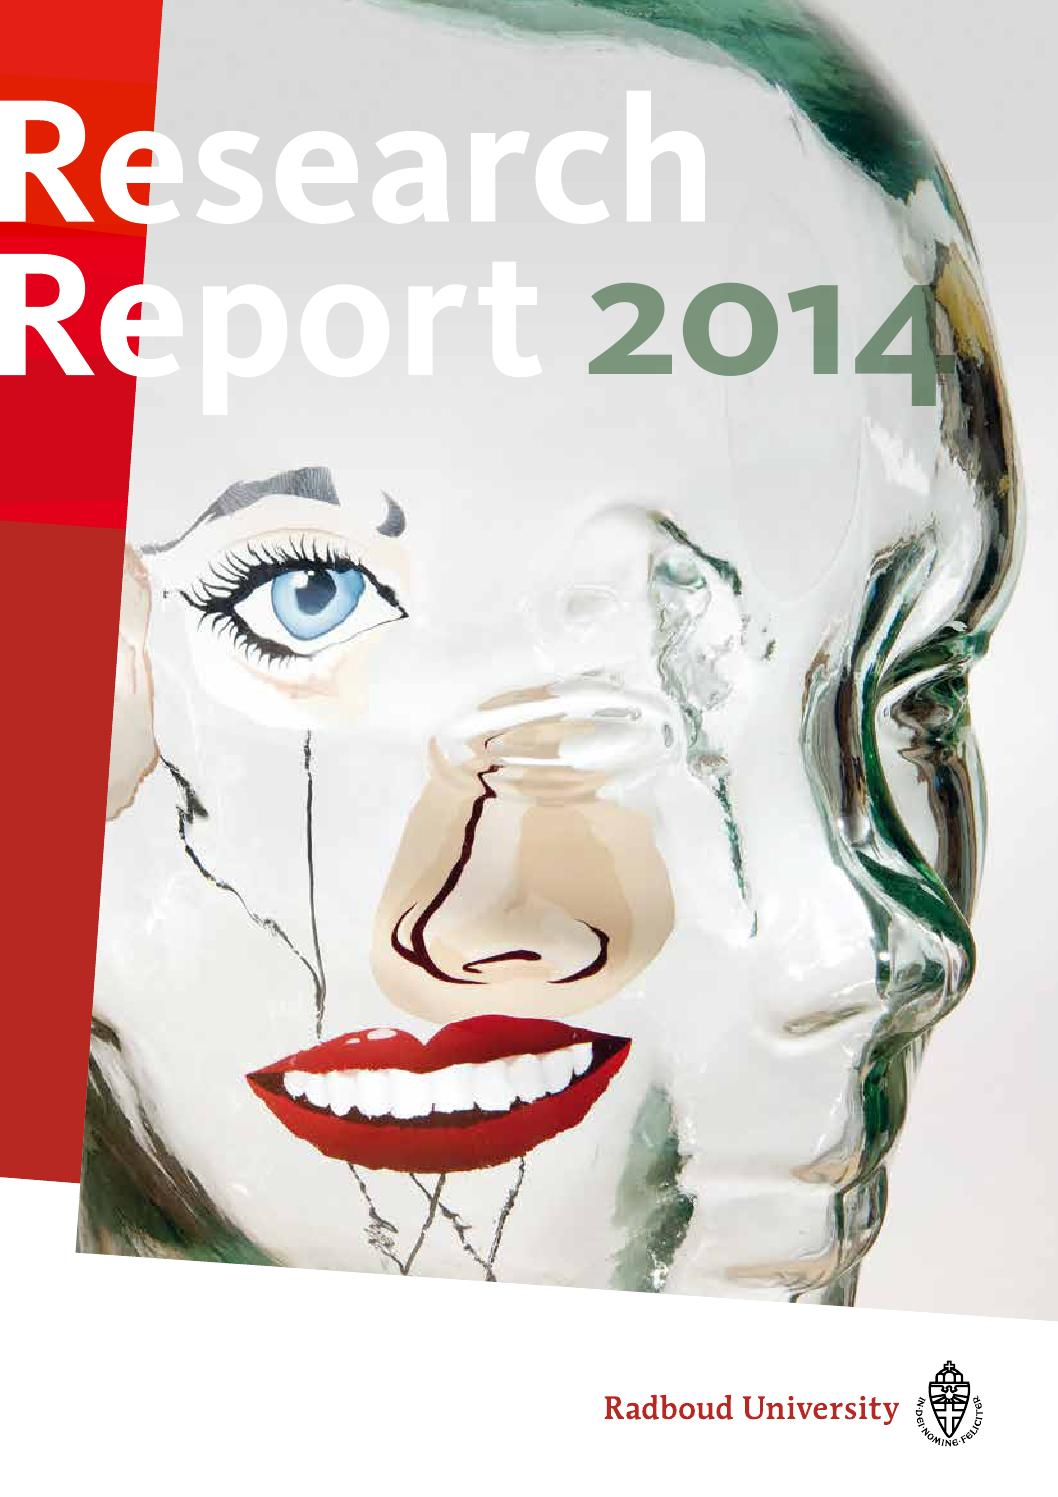 Radboud Research Report 2014 By Barbara Ioss Issuu